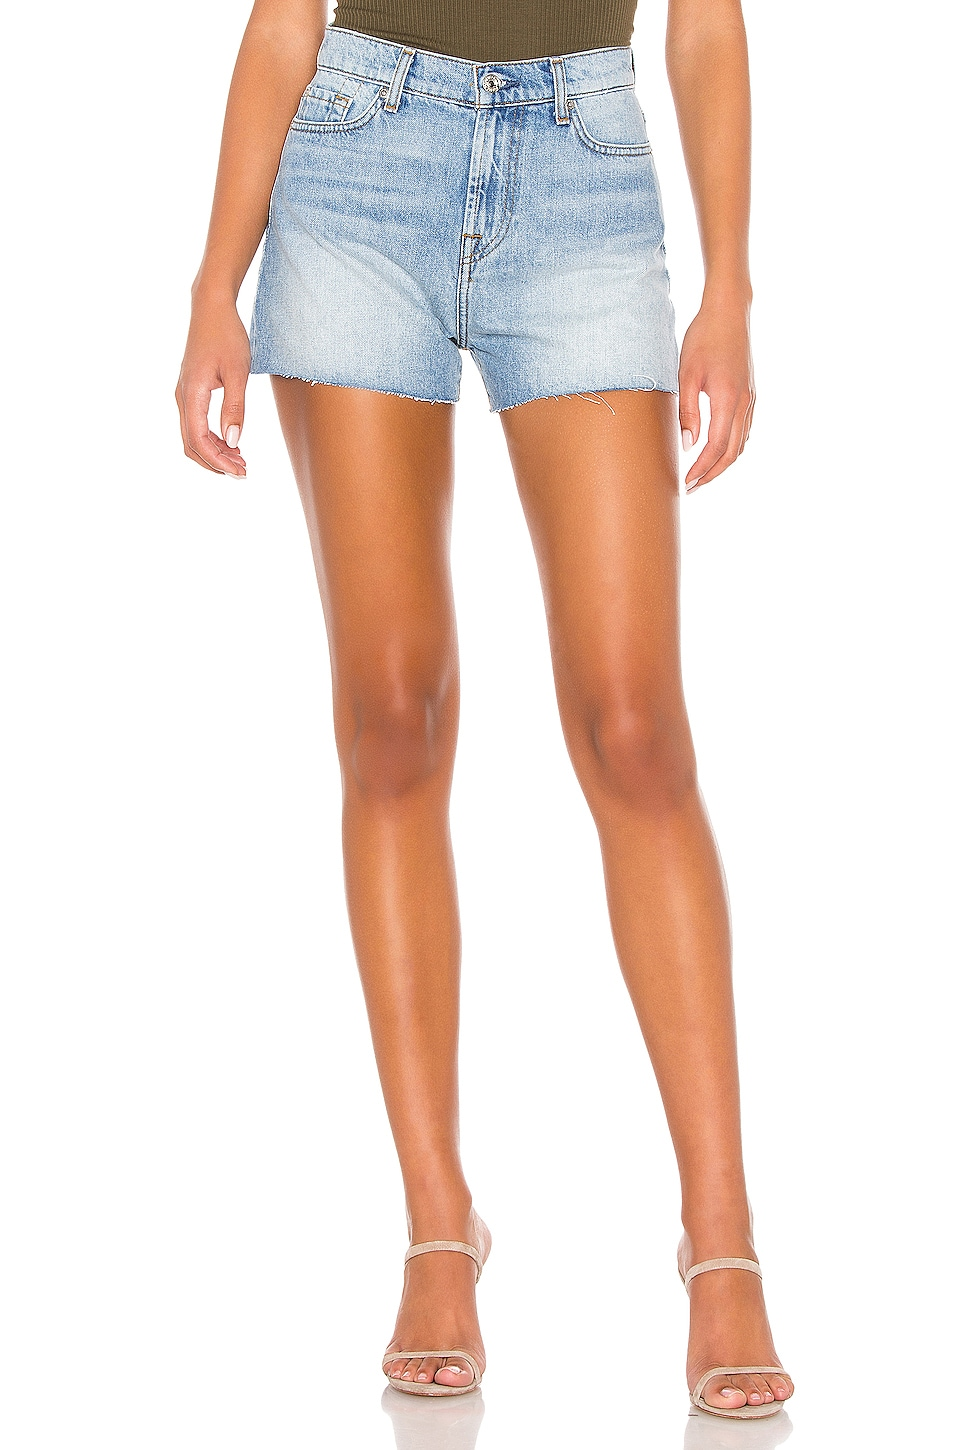 7 For All Mankind Cut Off Short in Prairie Sky